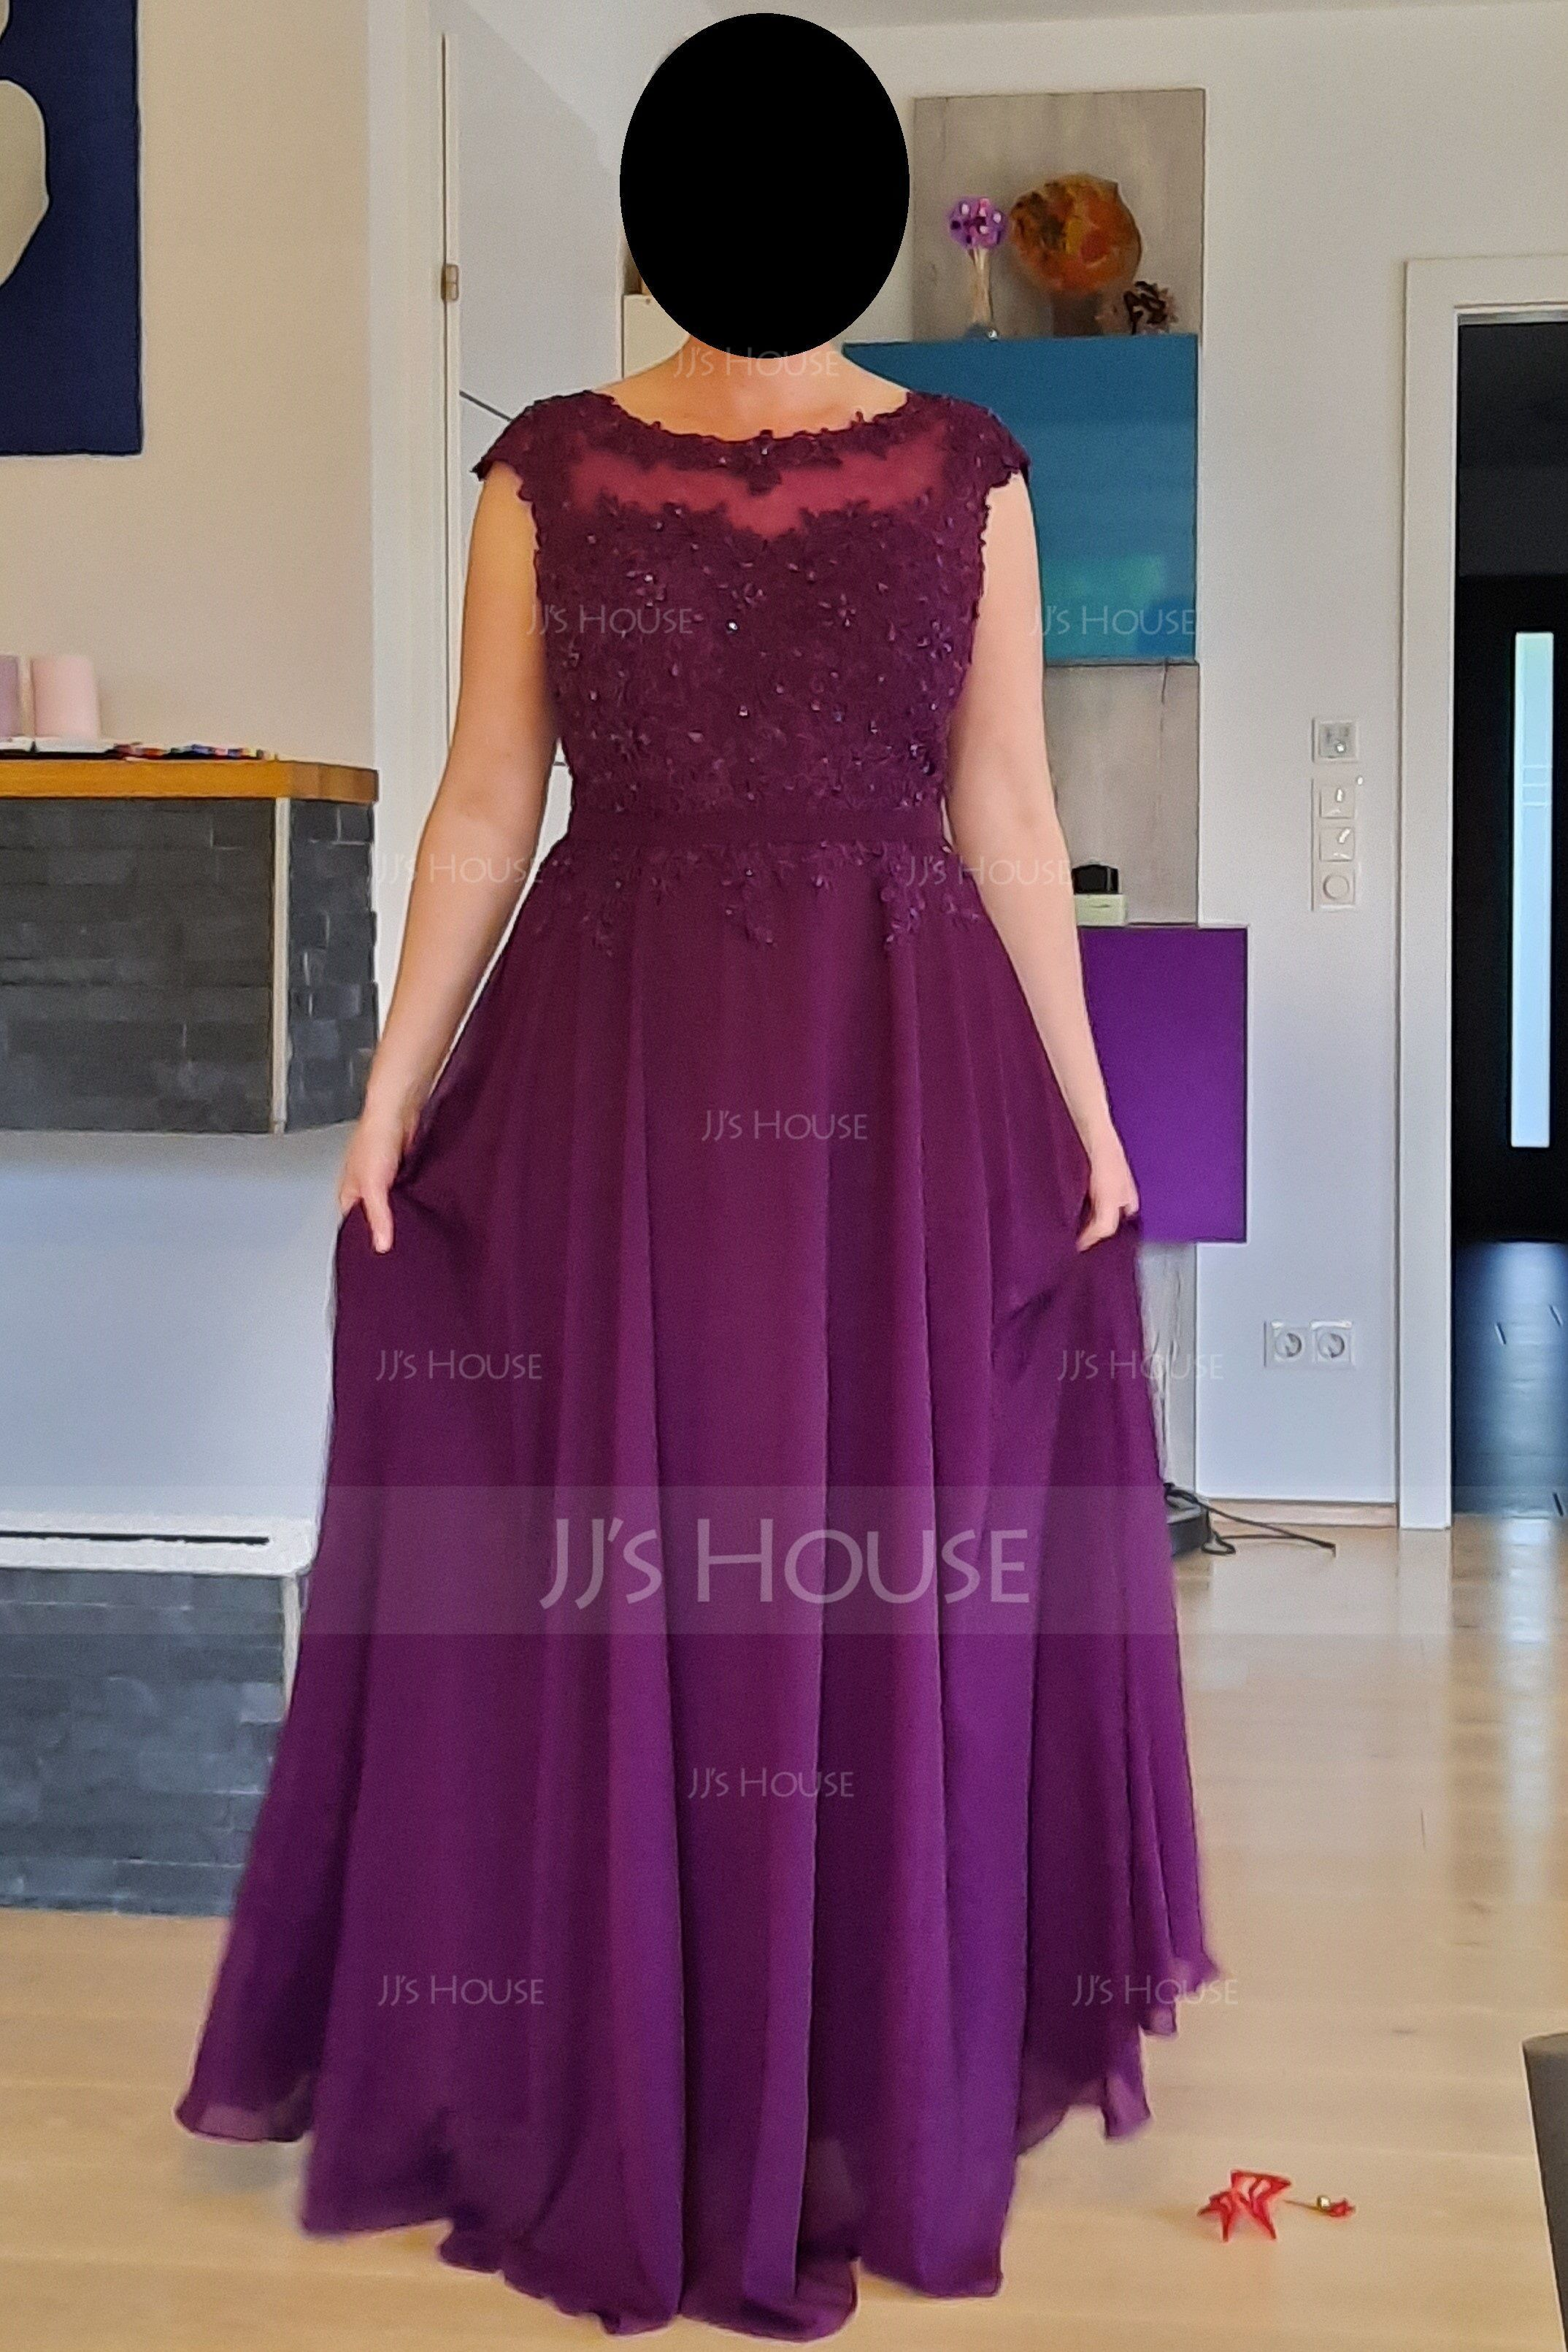 A-Line/Princess Scoop Neck Floor-Length Chiffon Prom Dresses With Beading Appliques Lace Sequins (018112725)